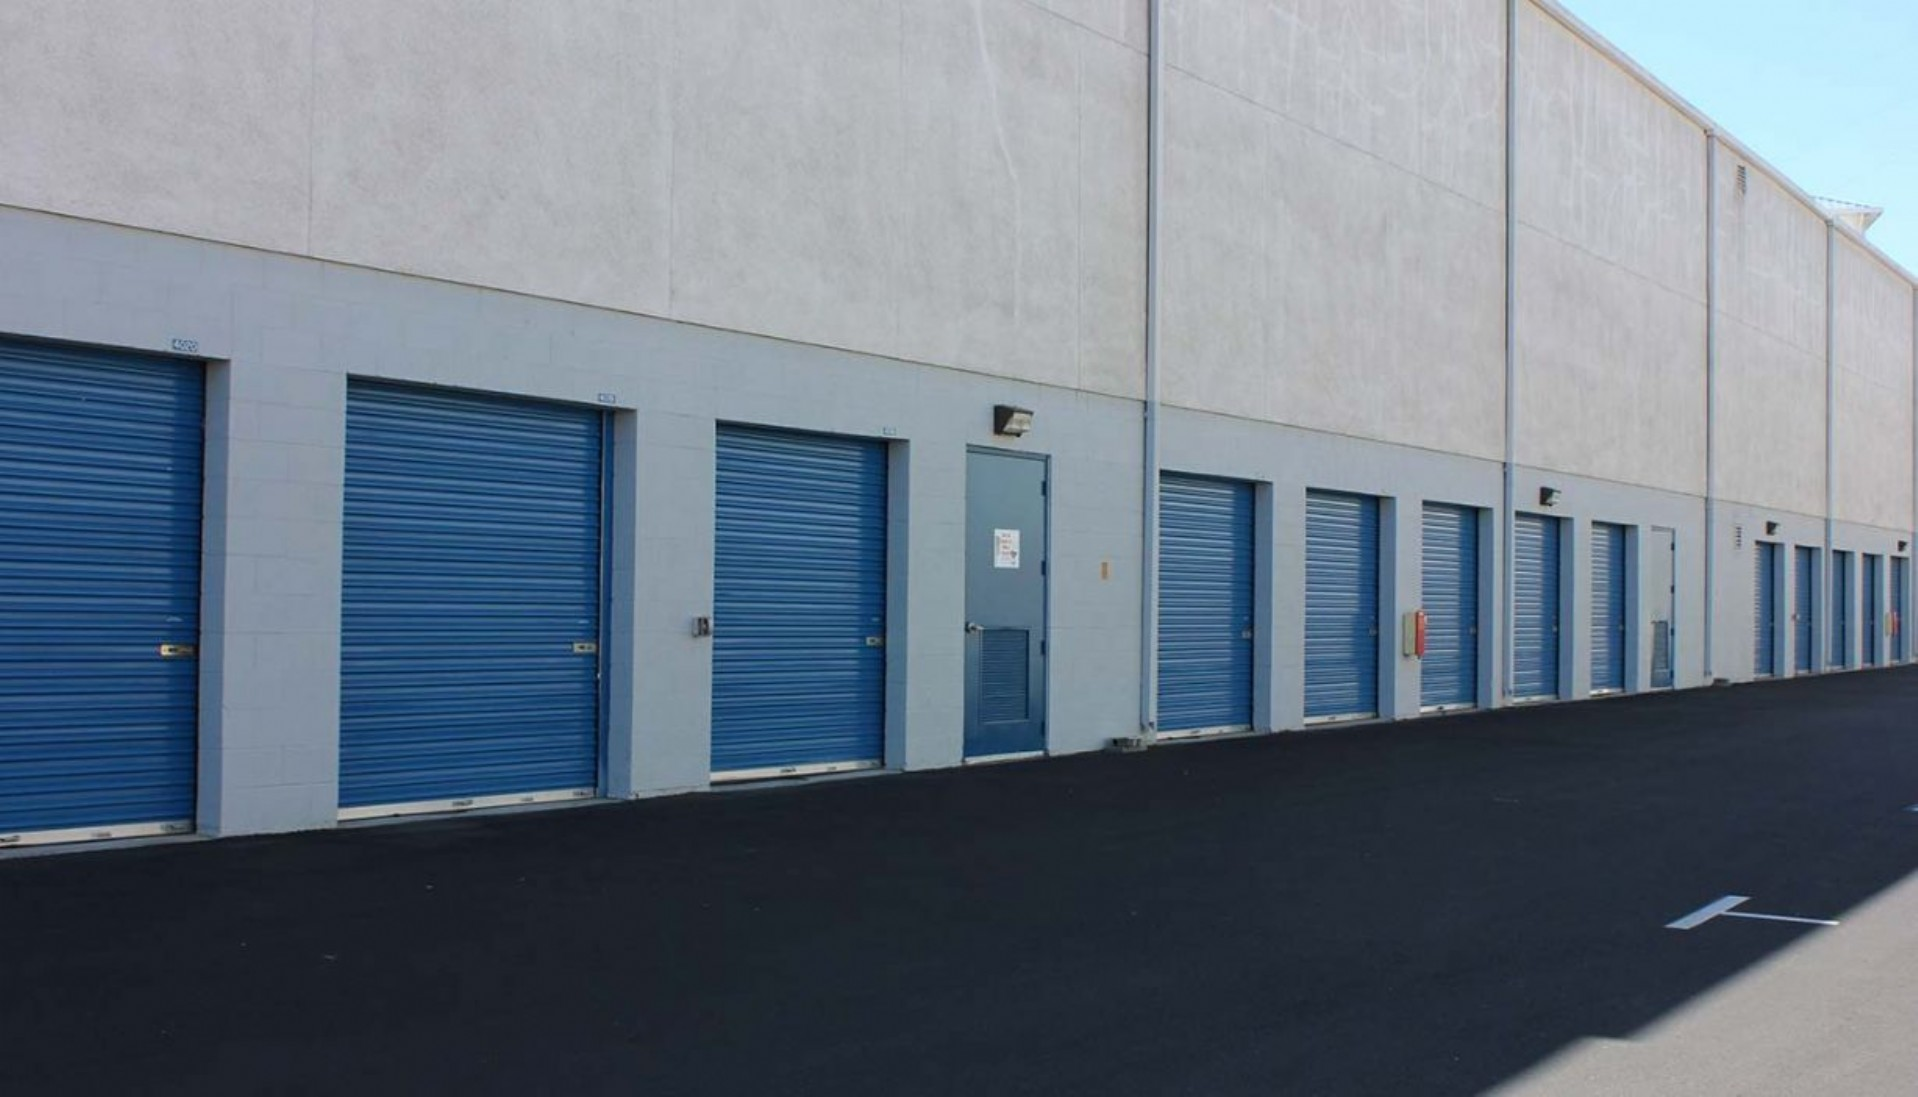 Price Self Storage Walnut Creek garage sized drive up access storage units with roll up doors